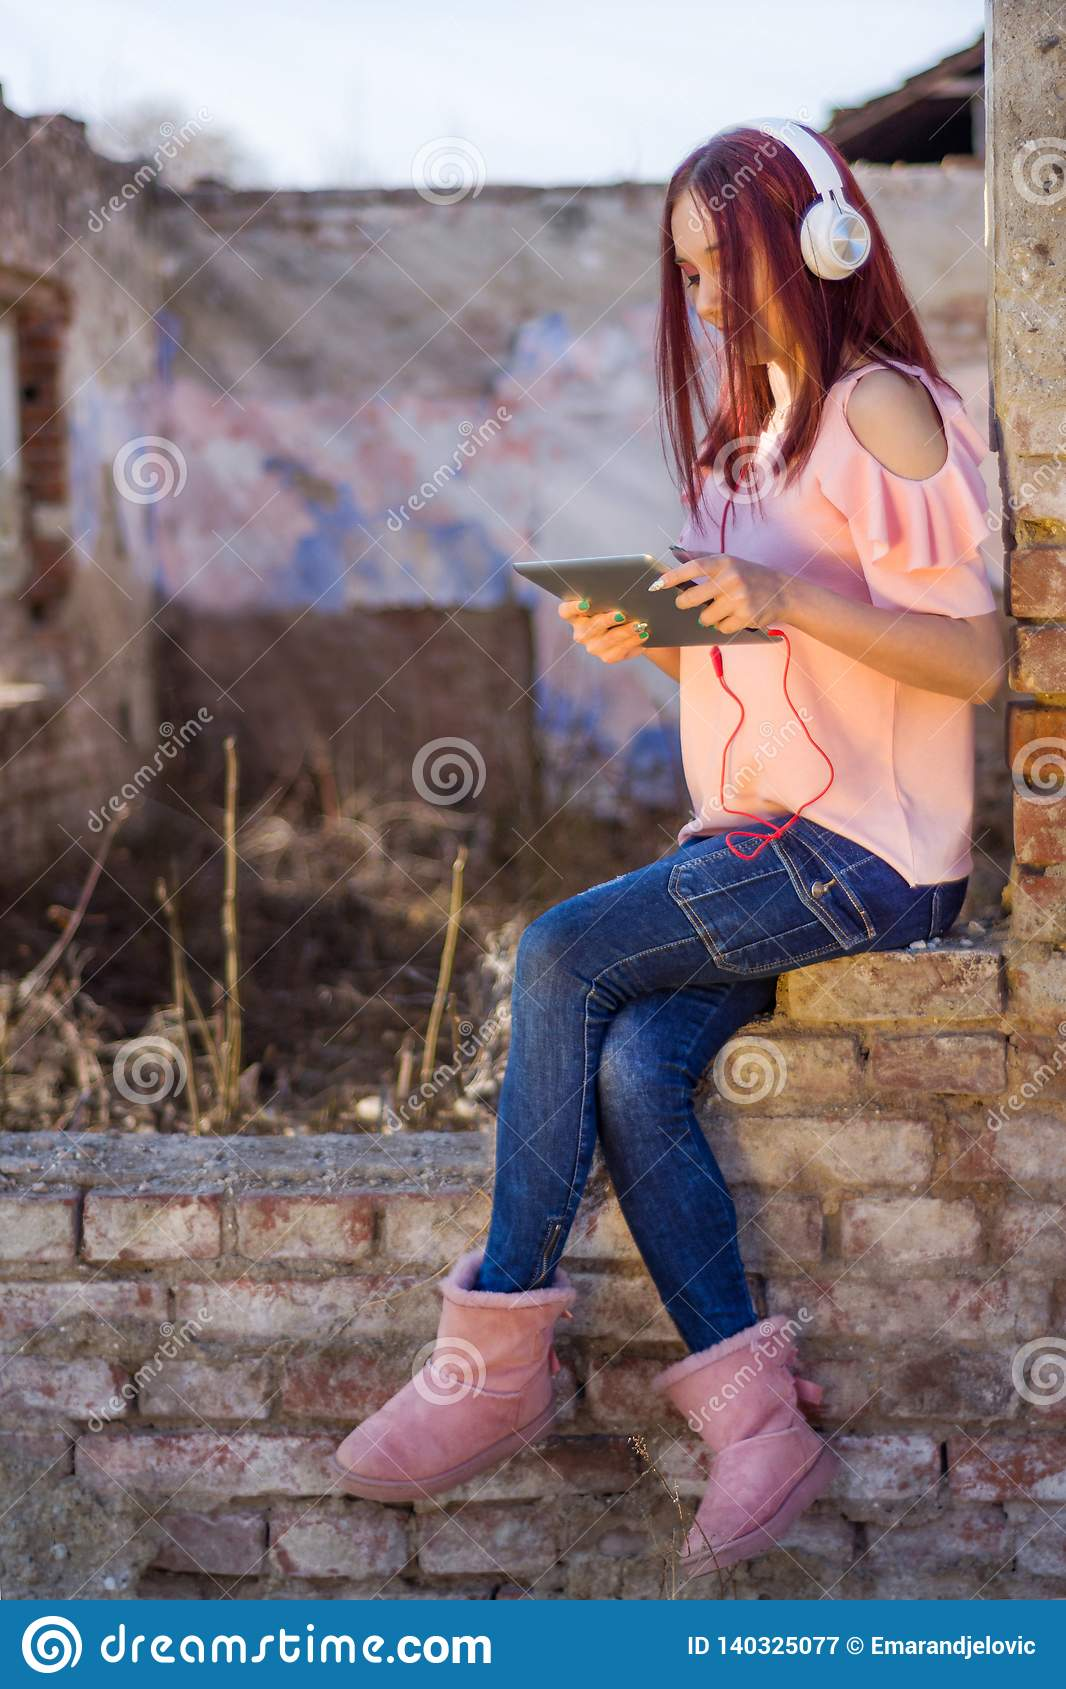 Redheads lady with digital tablet listening to music on headphones on ruins wall bricks of retro house in sunset